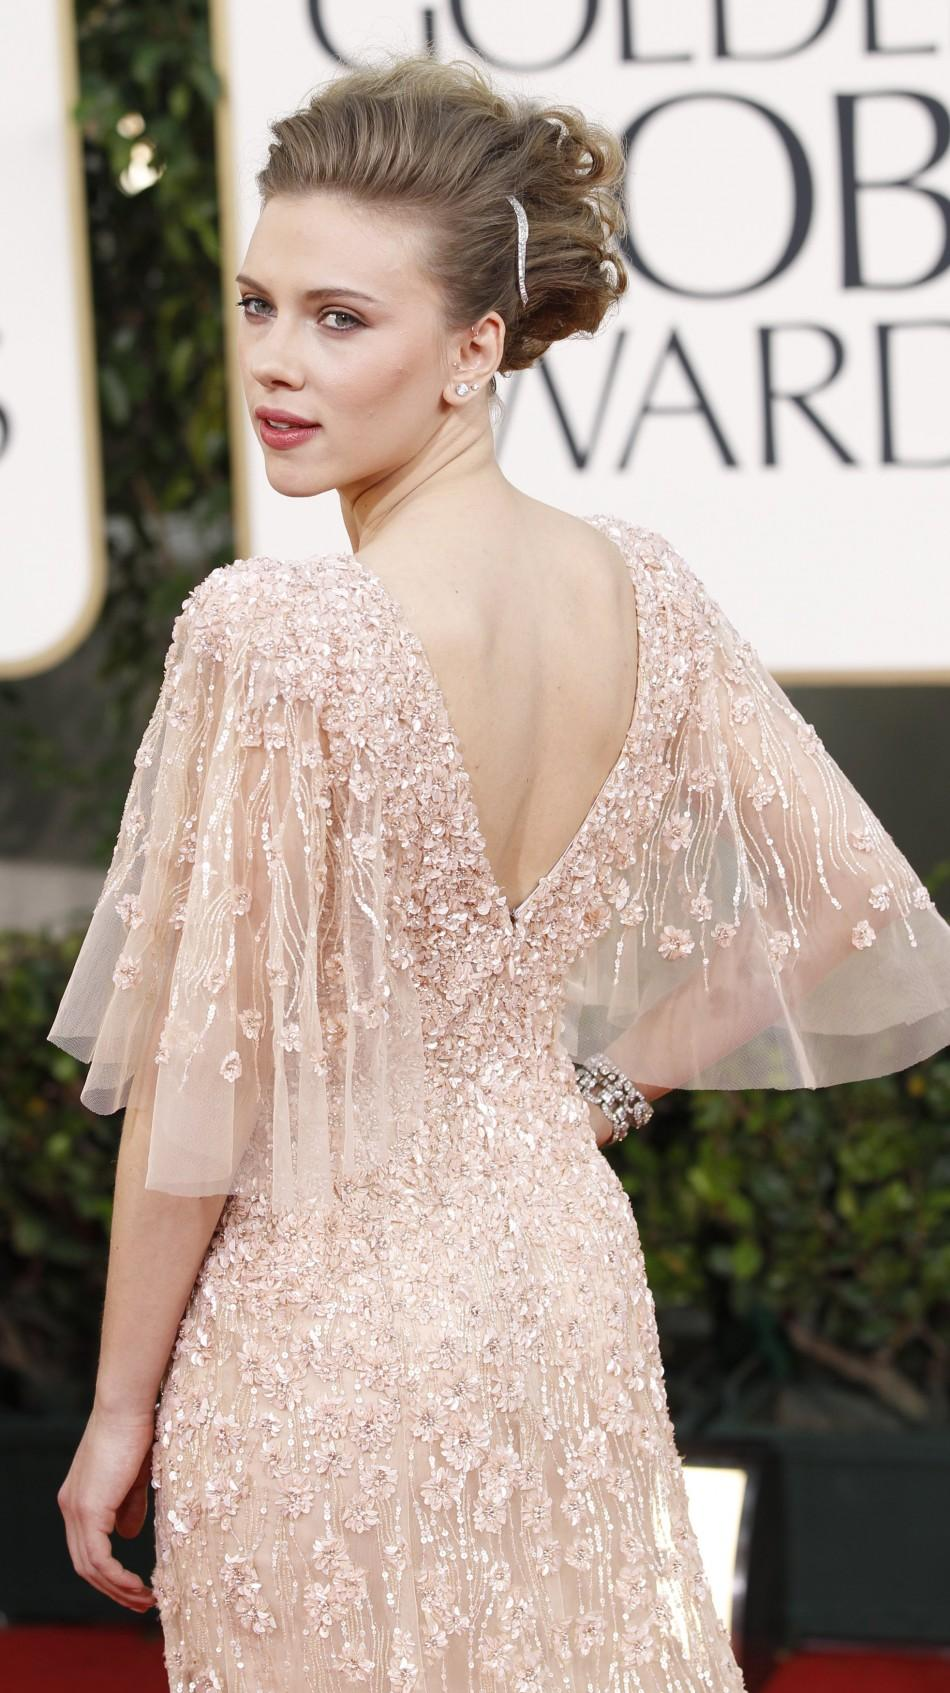 Actress Scarlett Johansson arrives at the 68th annual Golden Globe Awards in Beverly Hills